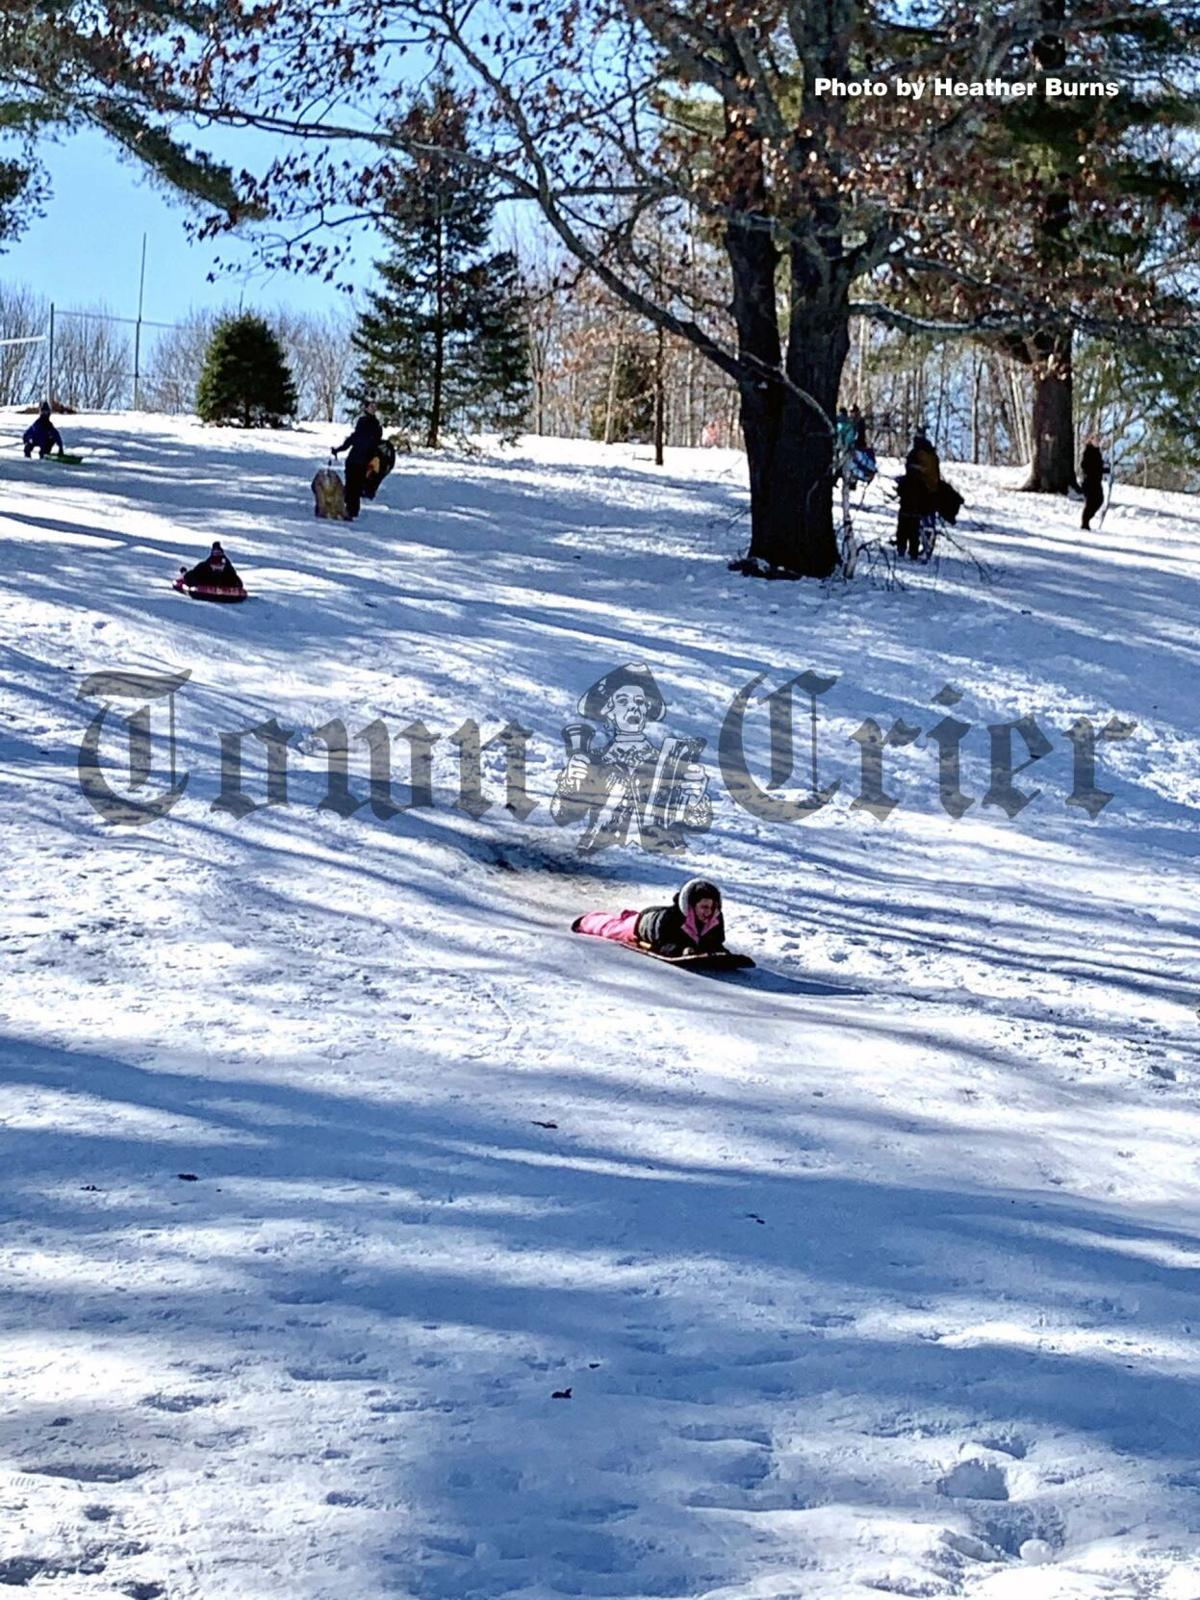 Sledding at Shed Park in Lowell